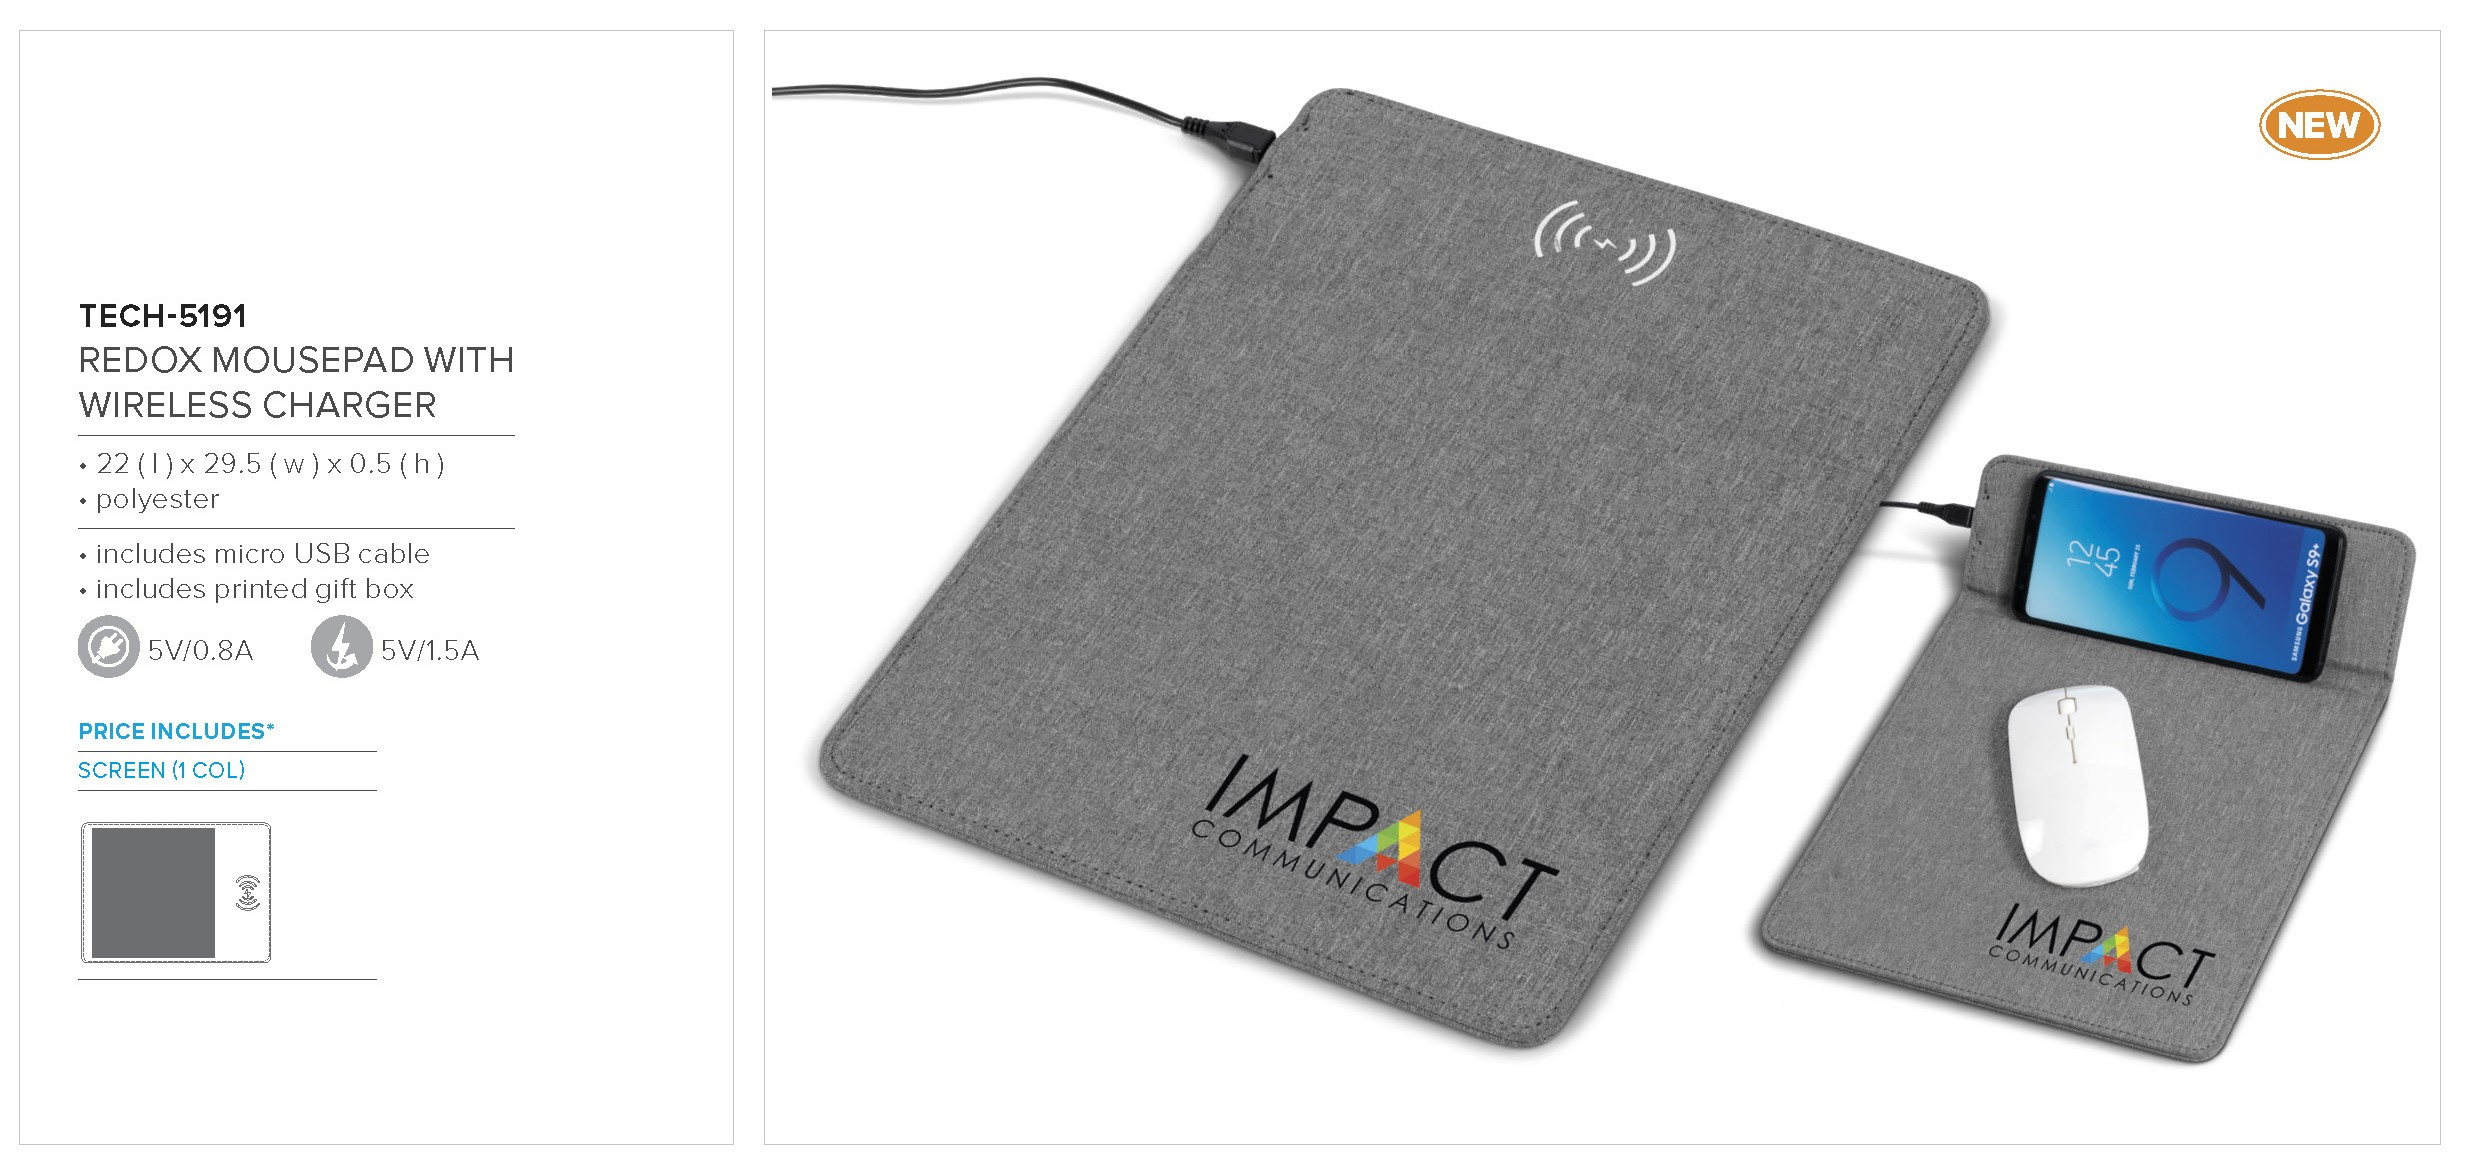 Redox Mouse Pad With Wireless Charger